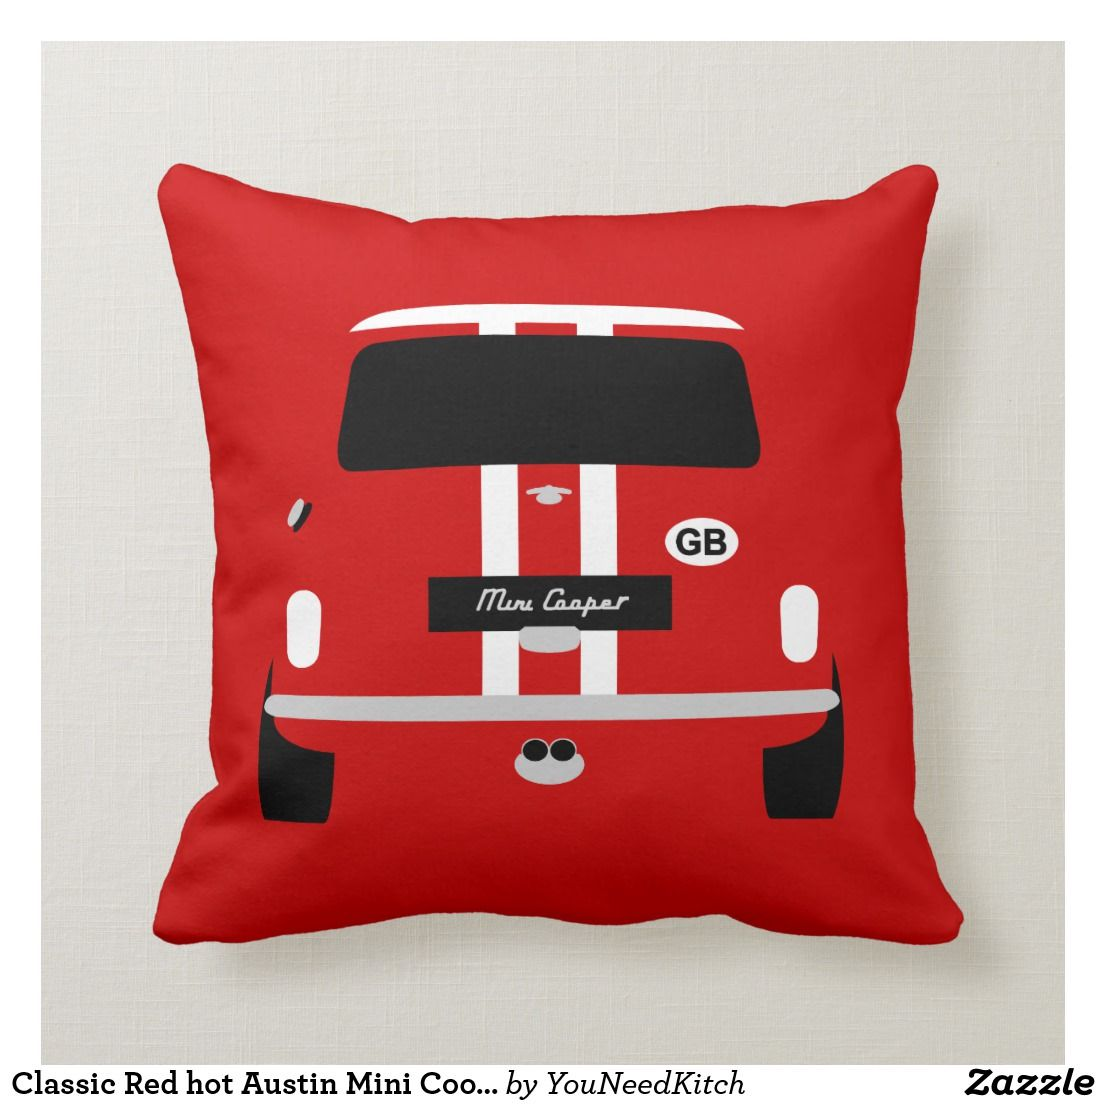 Classic Red hot Austin Mini Cooper car Cushion | Zazzle.com